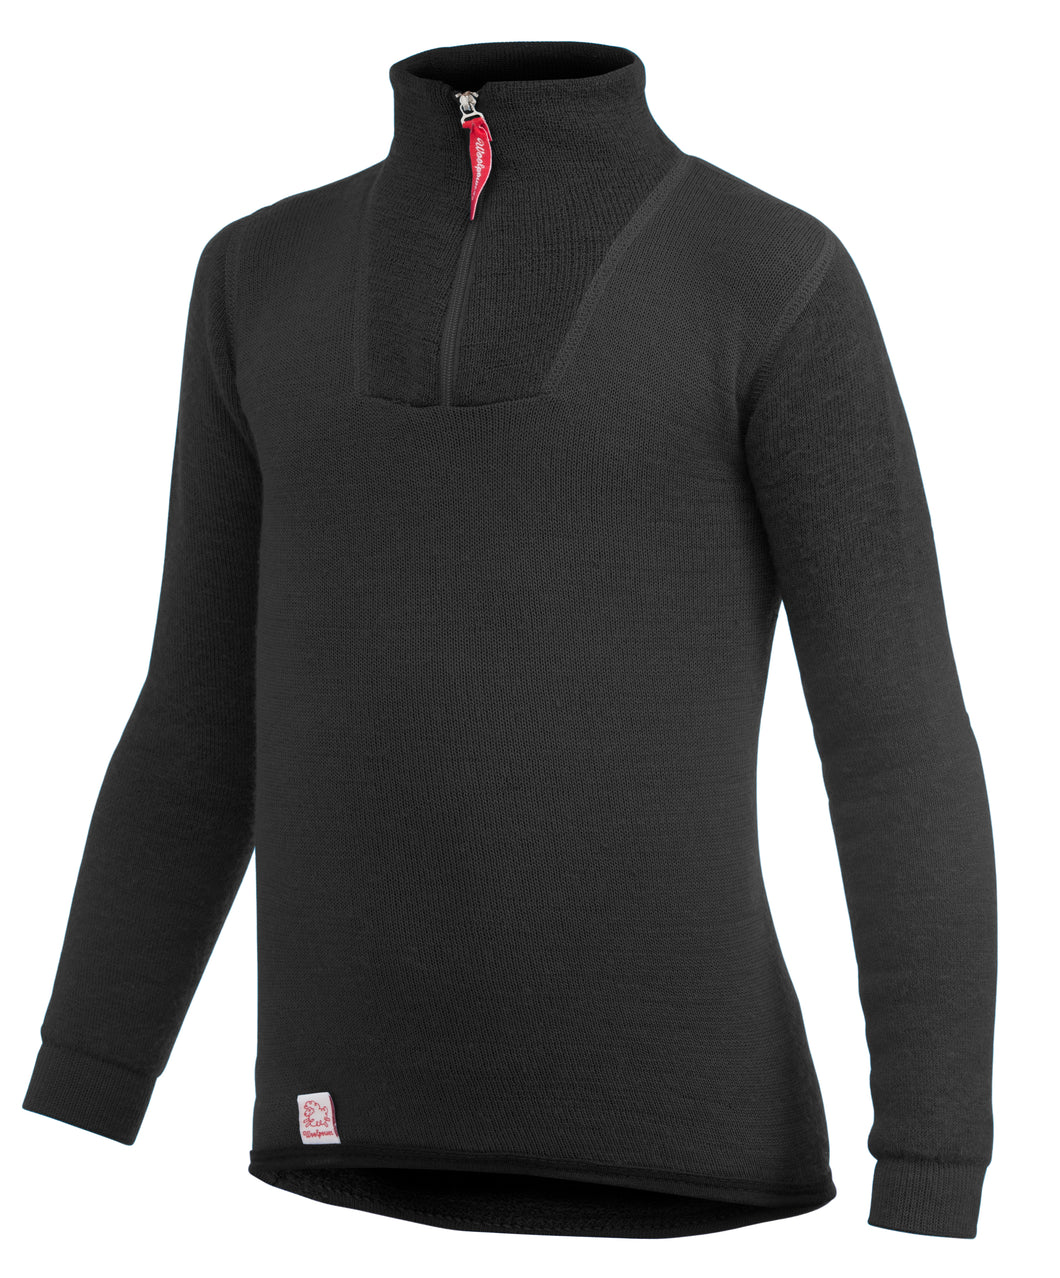 Woolpower 200g Children's Merino Wool Zip Turtleneck